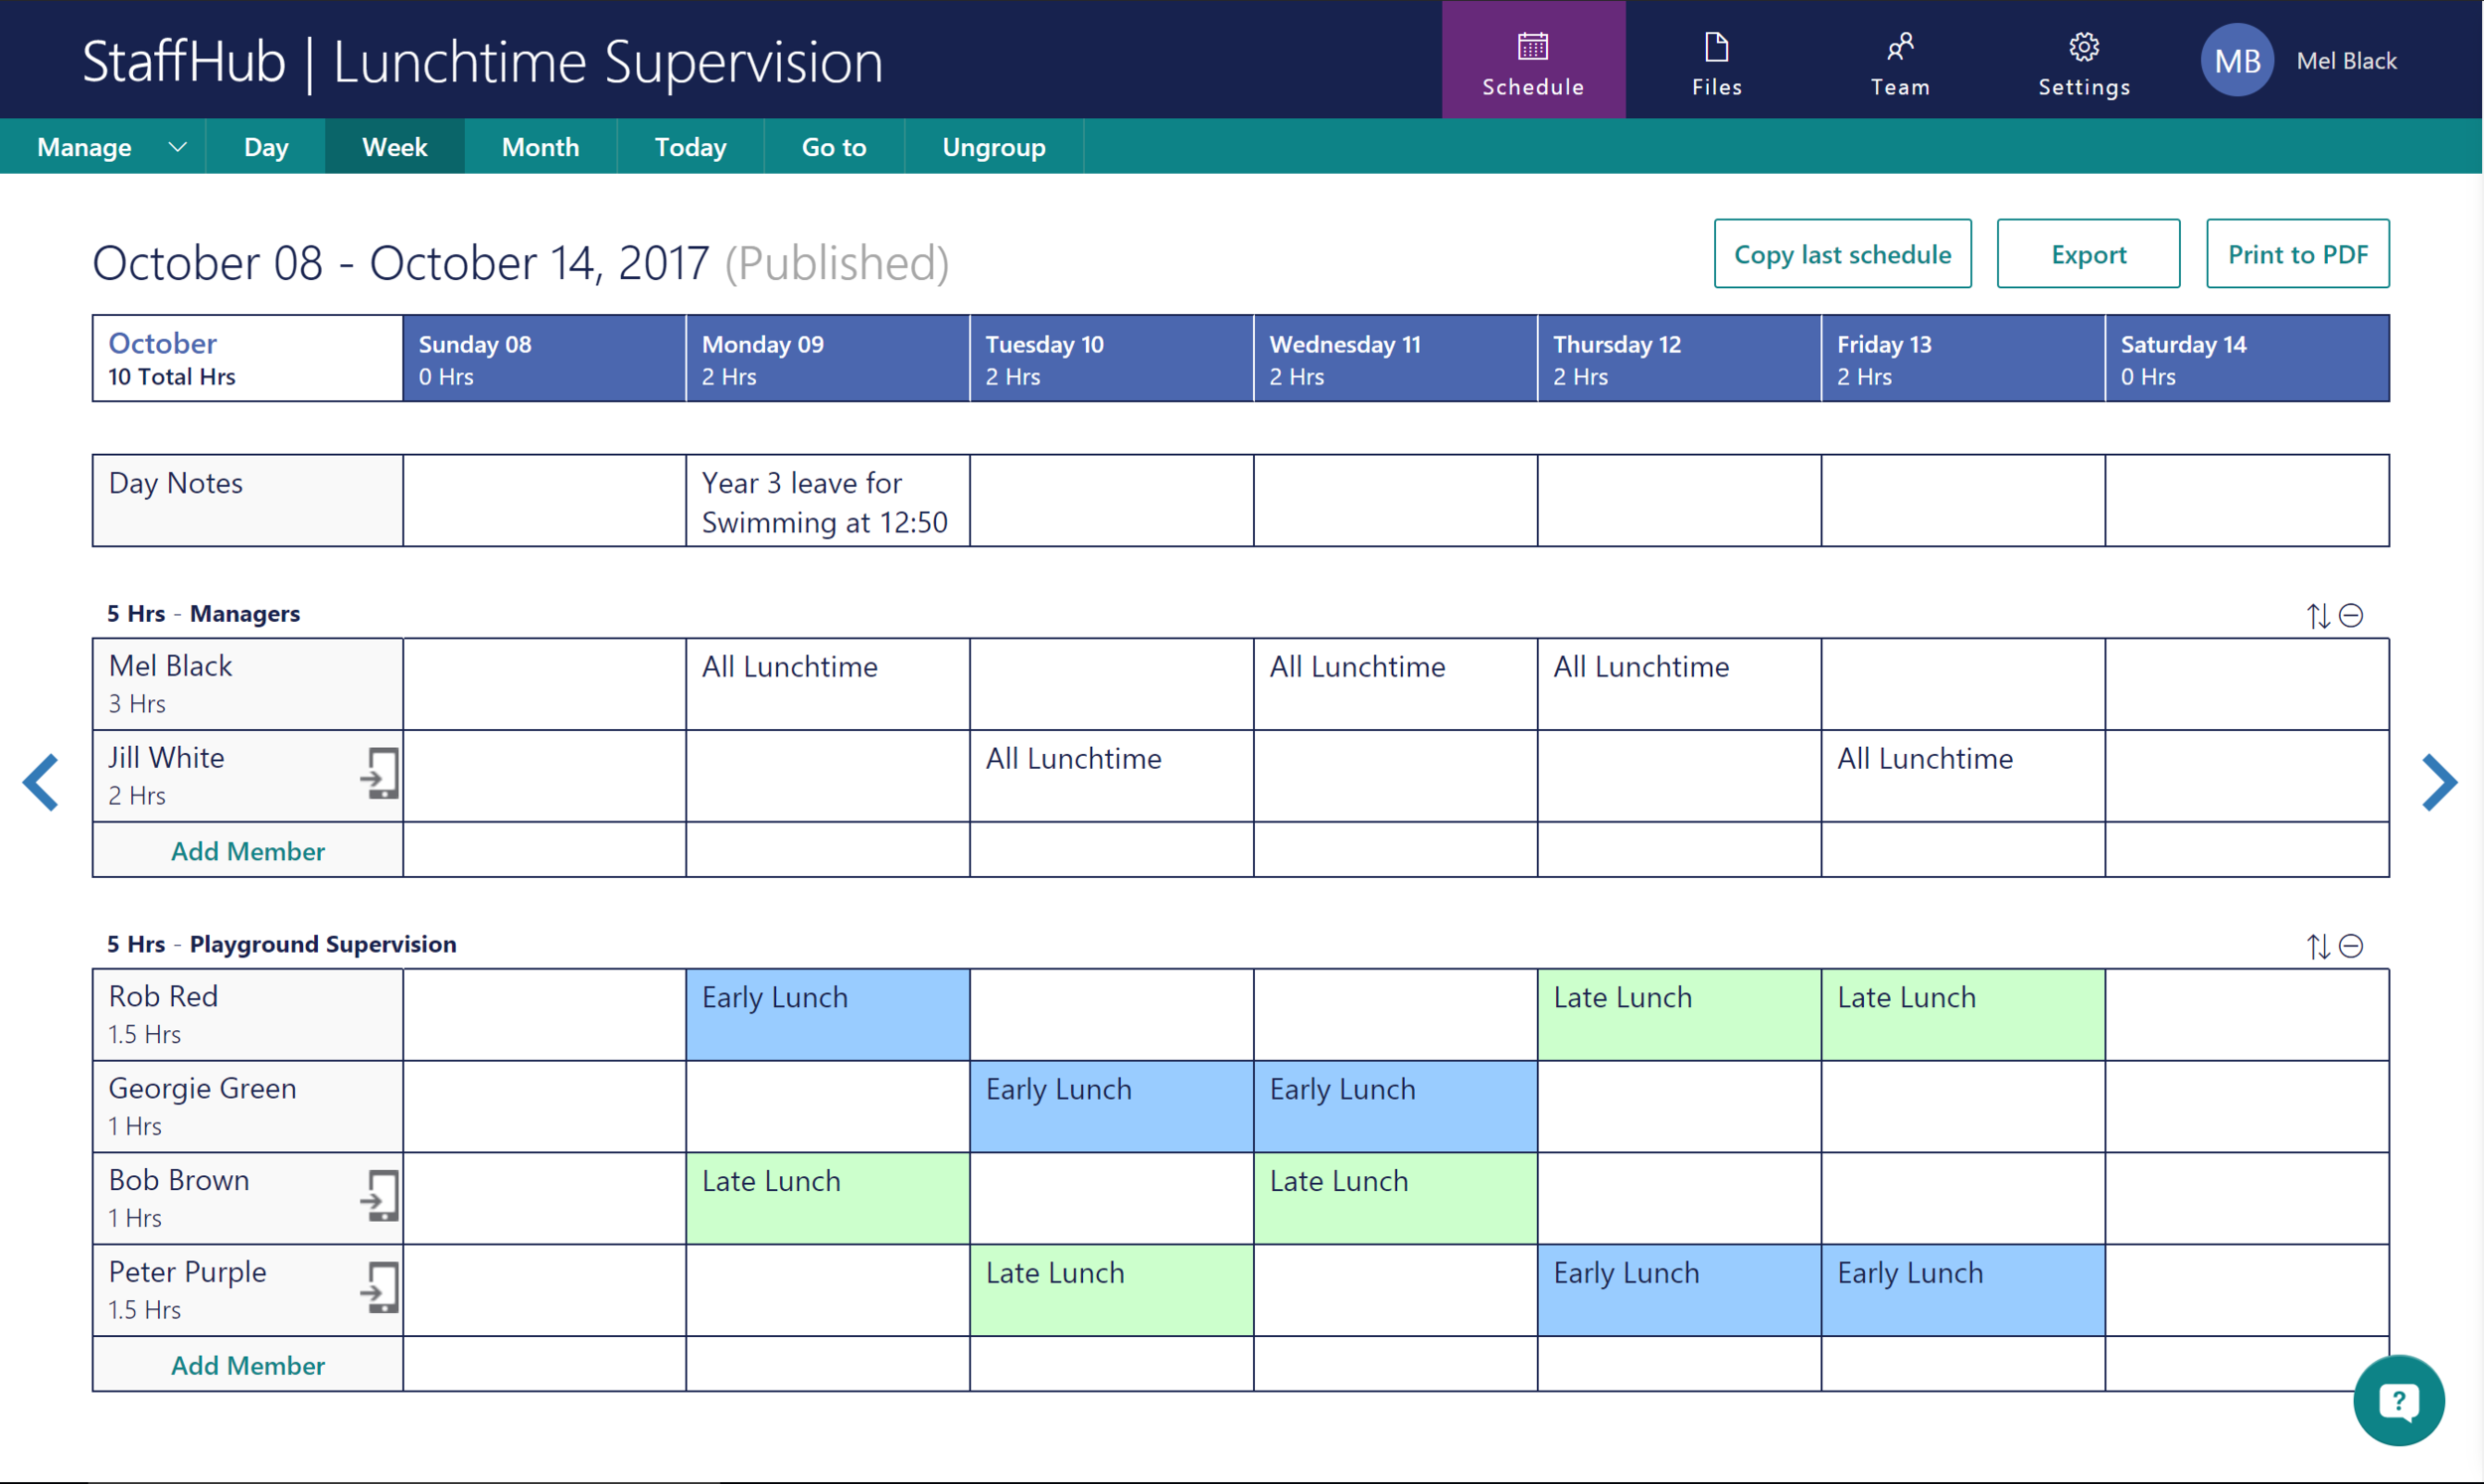 staffhub-schedule-example.png